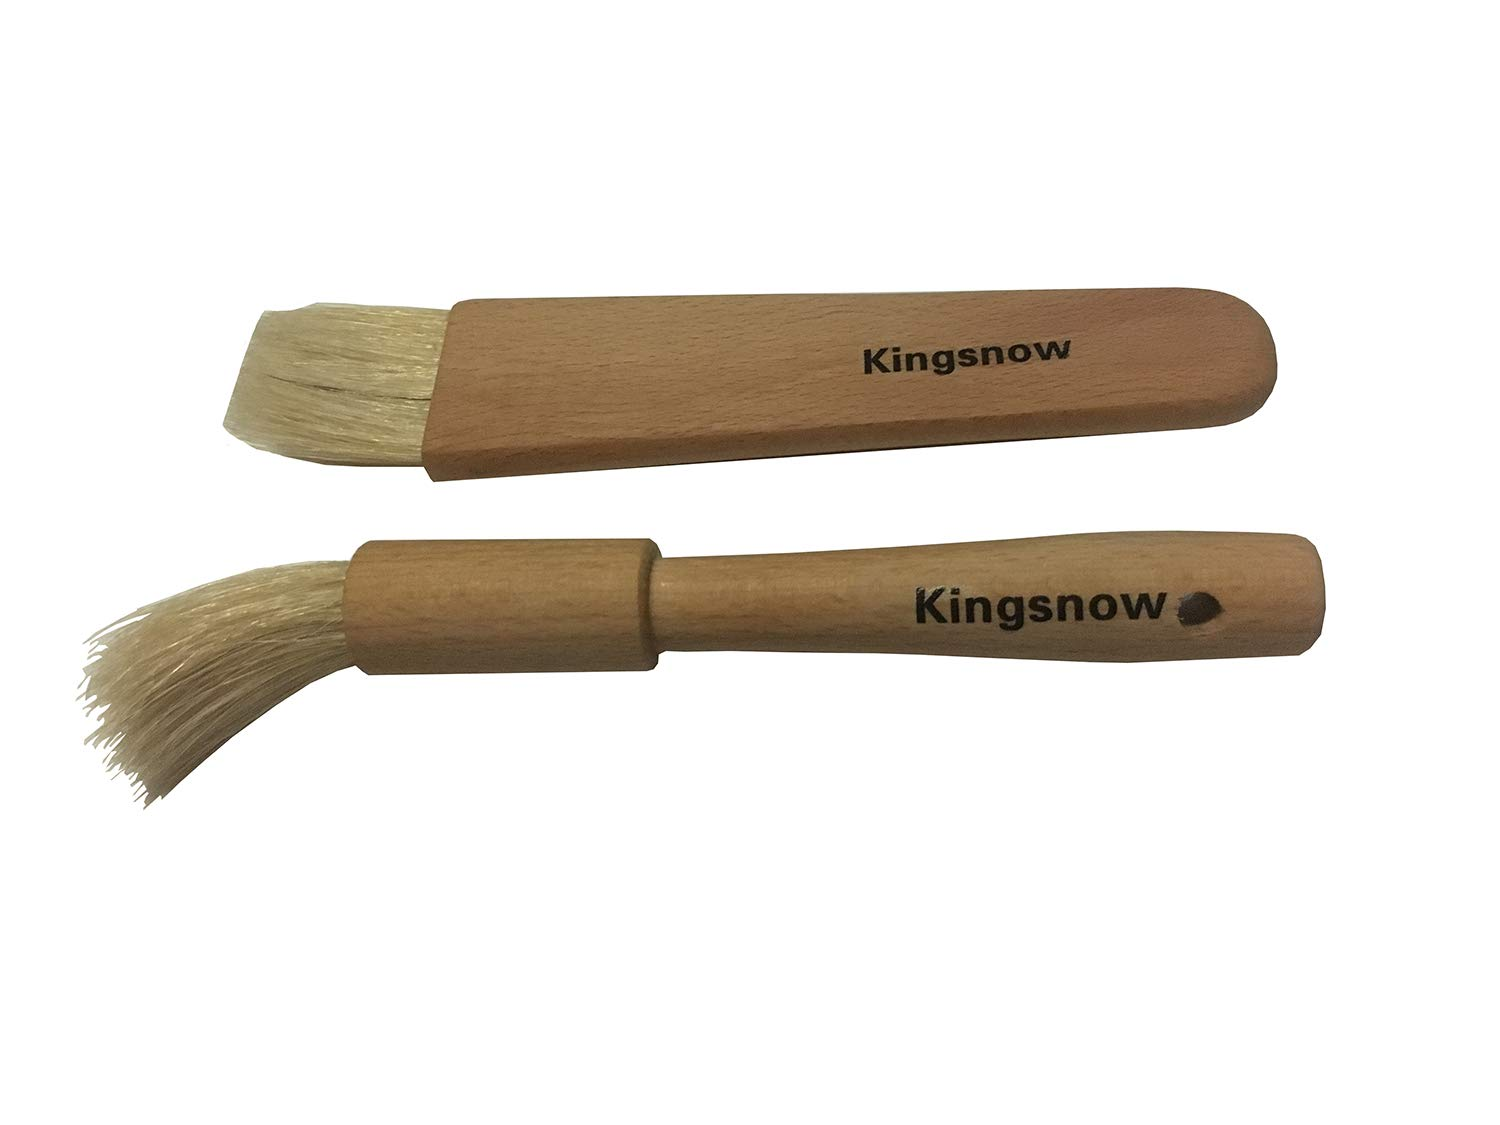 Kingsnow Wood and Pure Bristle Pastry Brush, Bakeware Range Pastry Brush, Wood and Natural Basting/Pastry Brush Set by Kingsnow